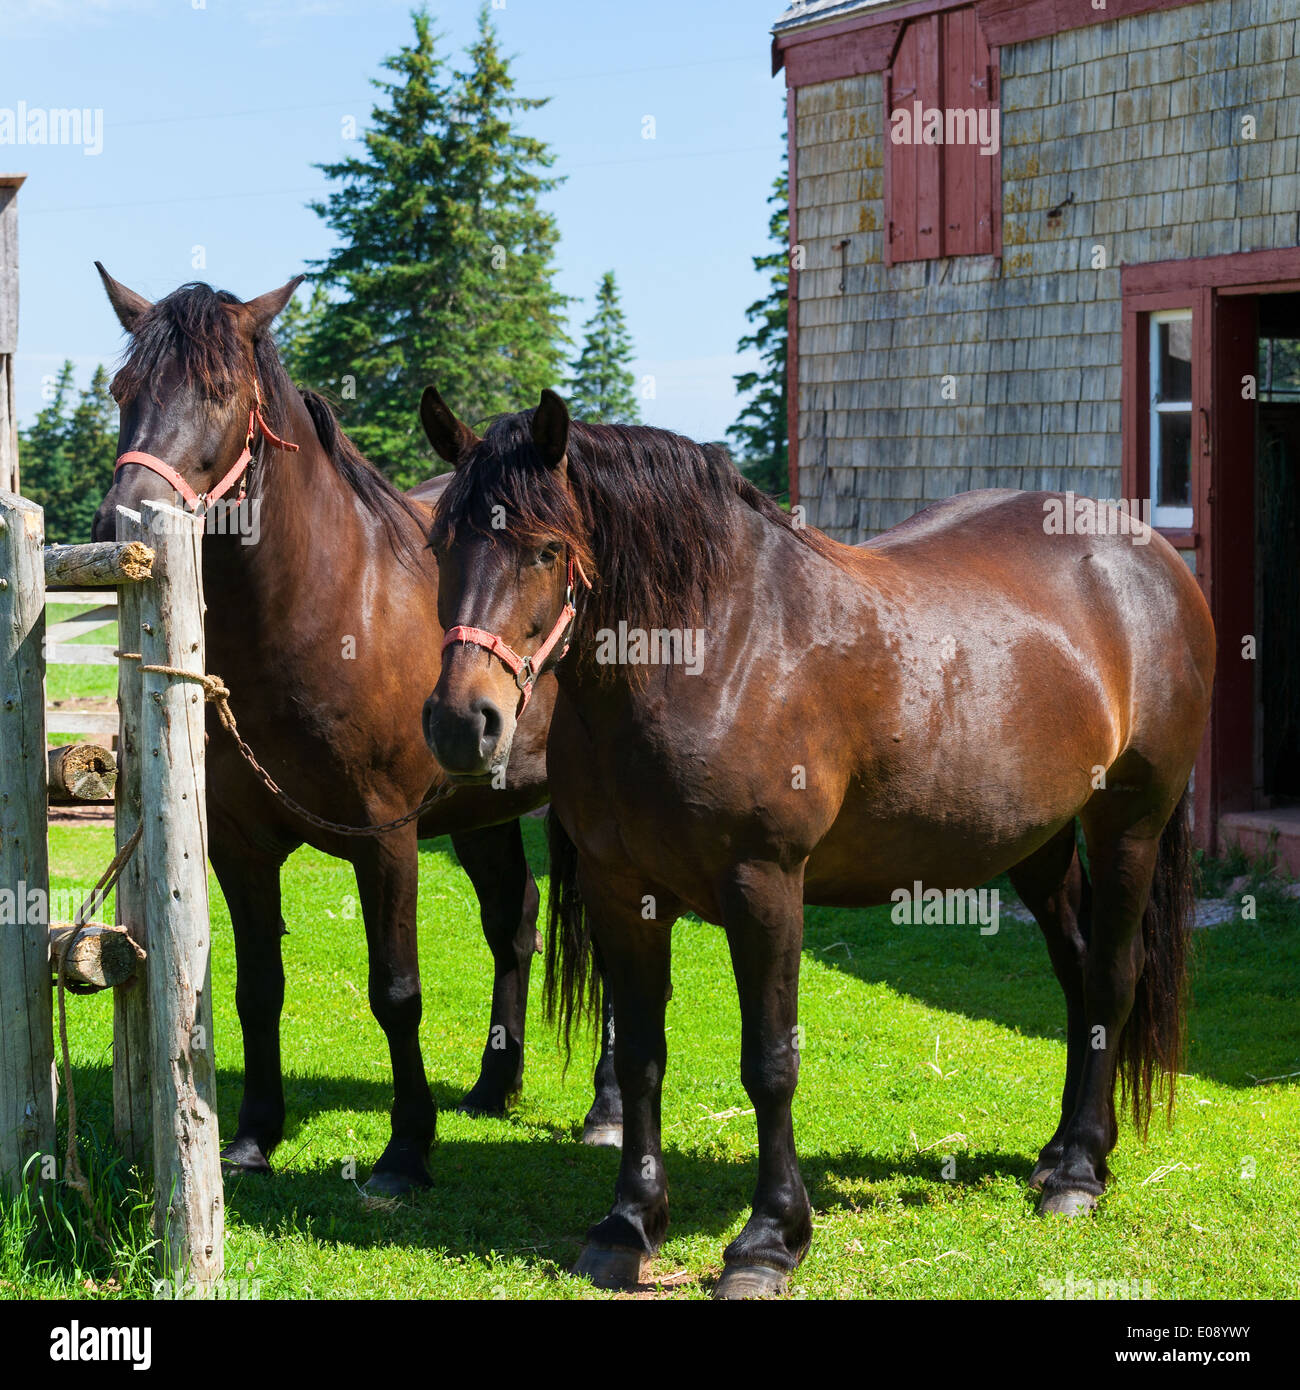 The Canadian Horse Is A Horse Breed From Canada That Is A Strong Stock Photo Alamy